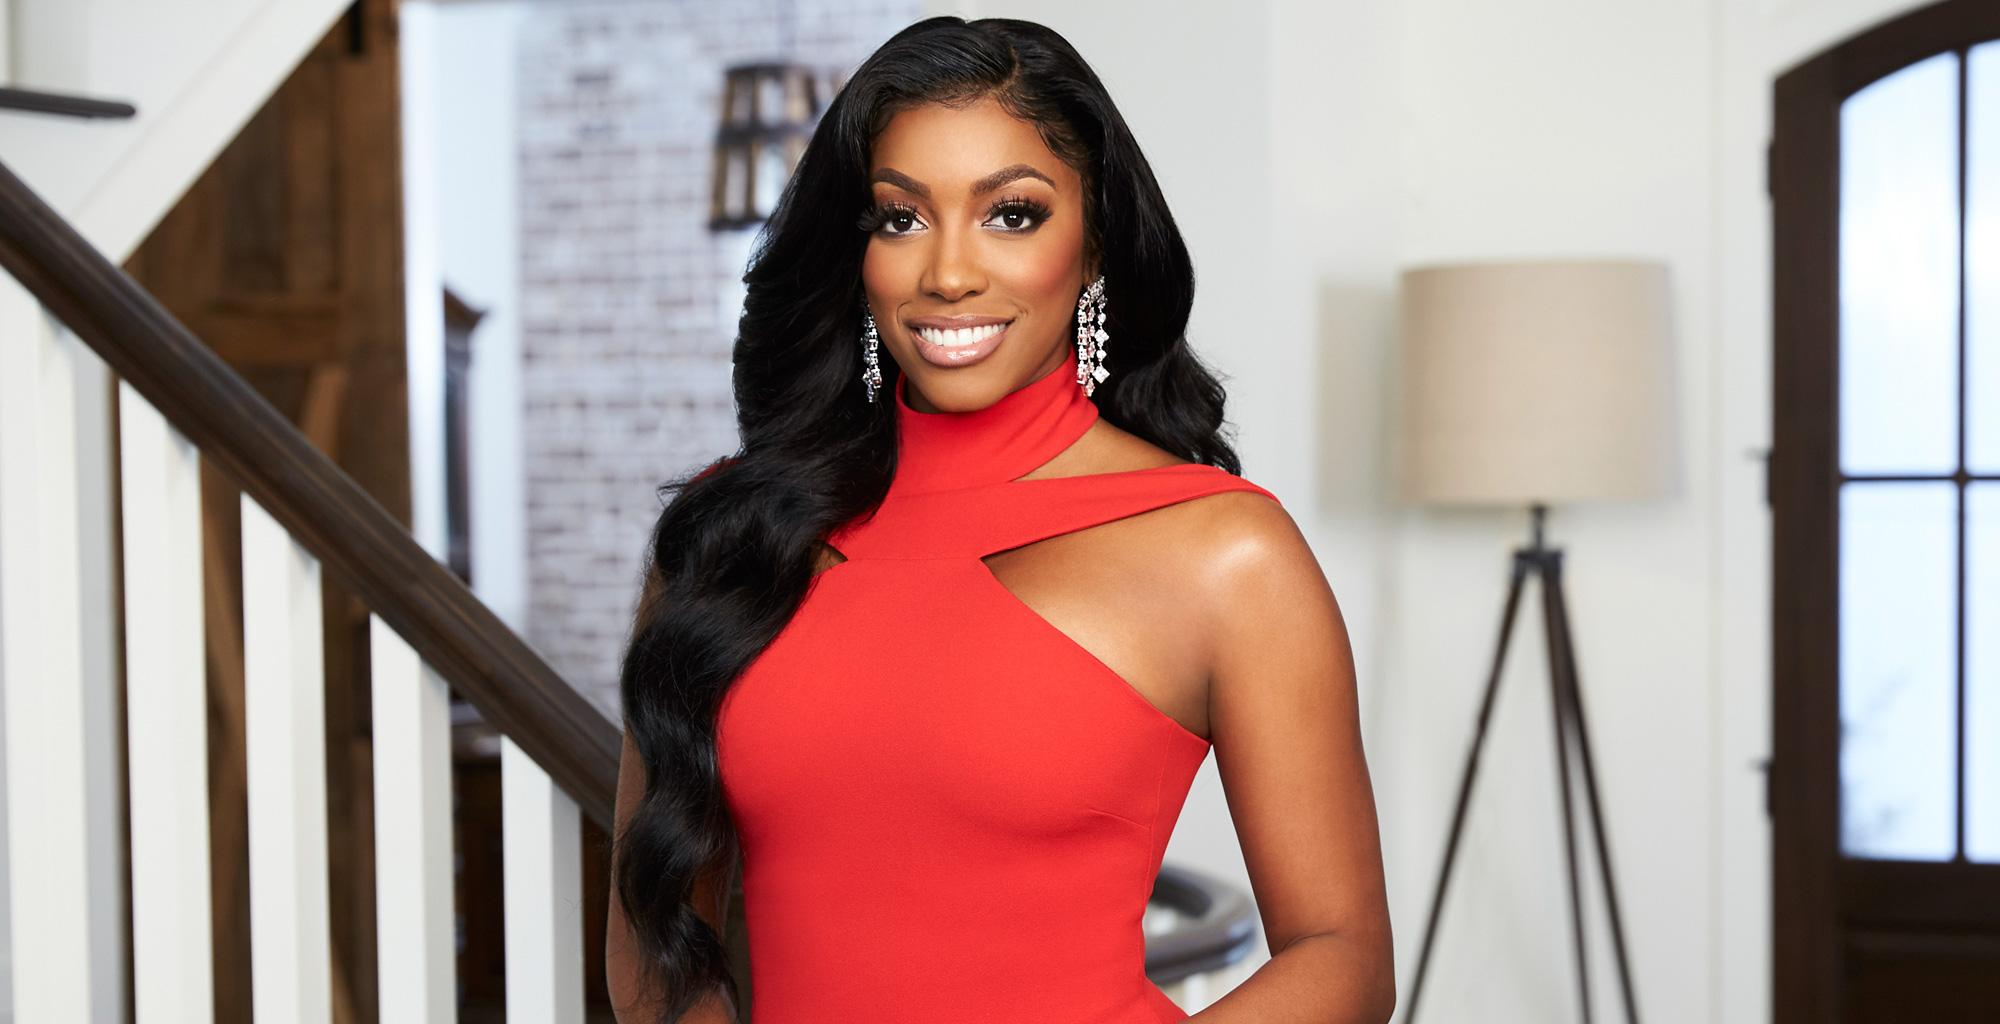 Porsha Williams Sparks Pregnancy Rumors With This Video